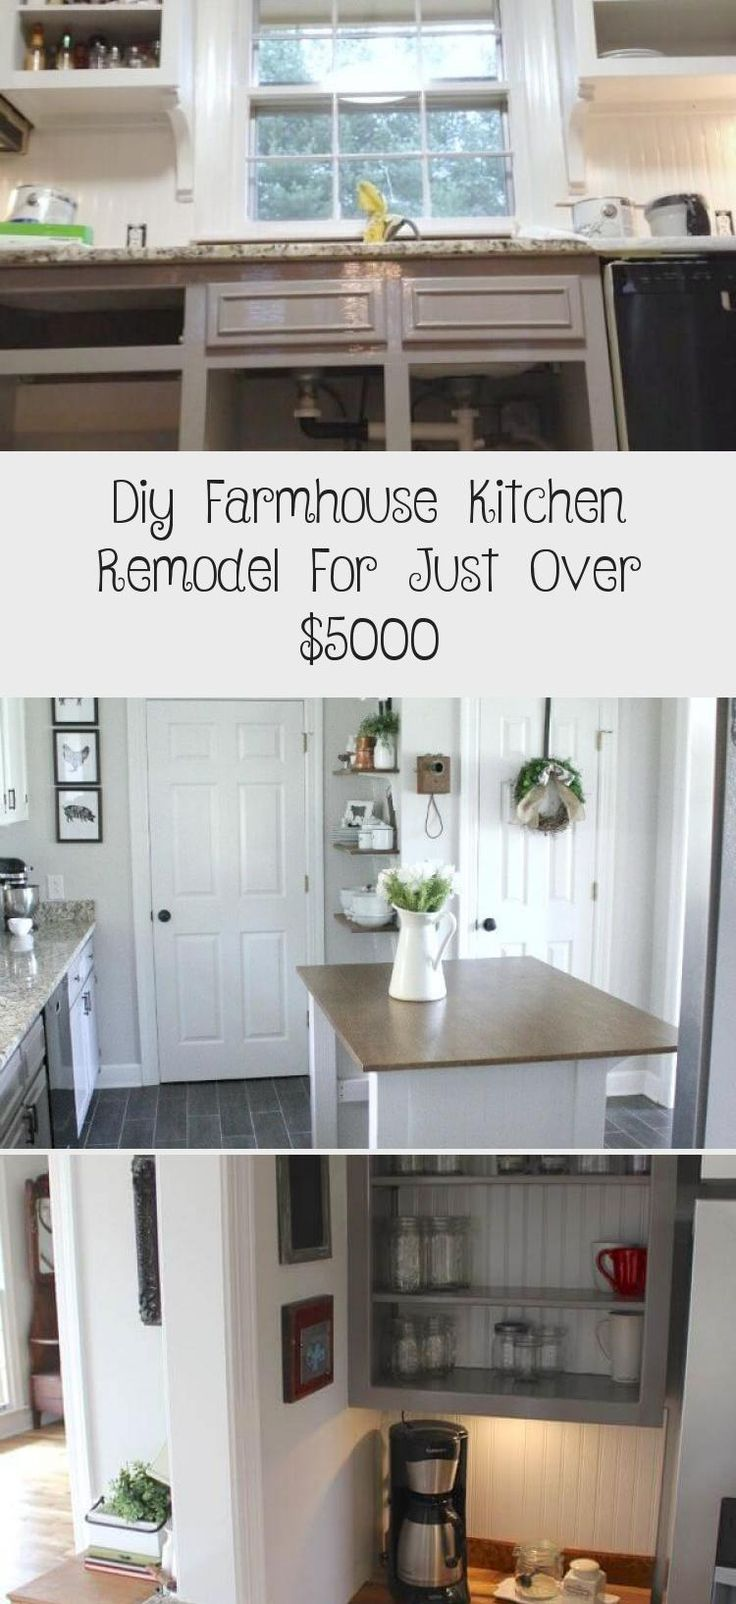 diy farmhouse kitchen remodel for just over 5000 kitchen decor in 2020 farmhouse kitchen on kitchen remodel under 5000 id=38488